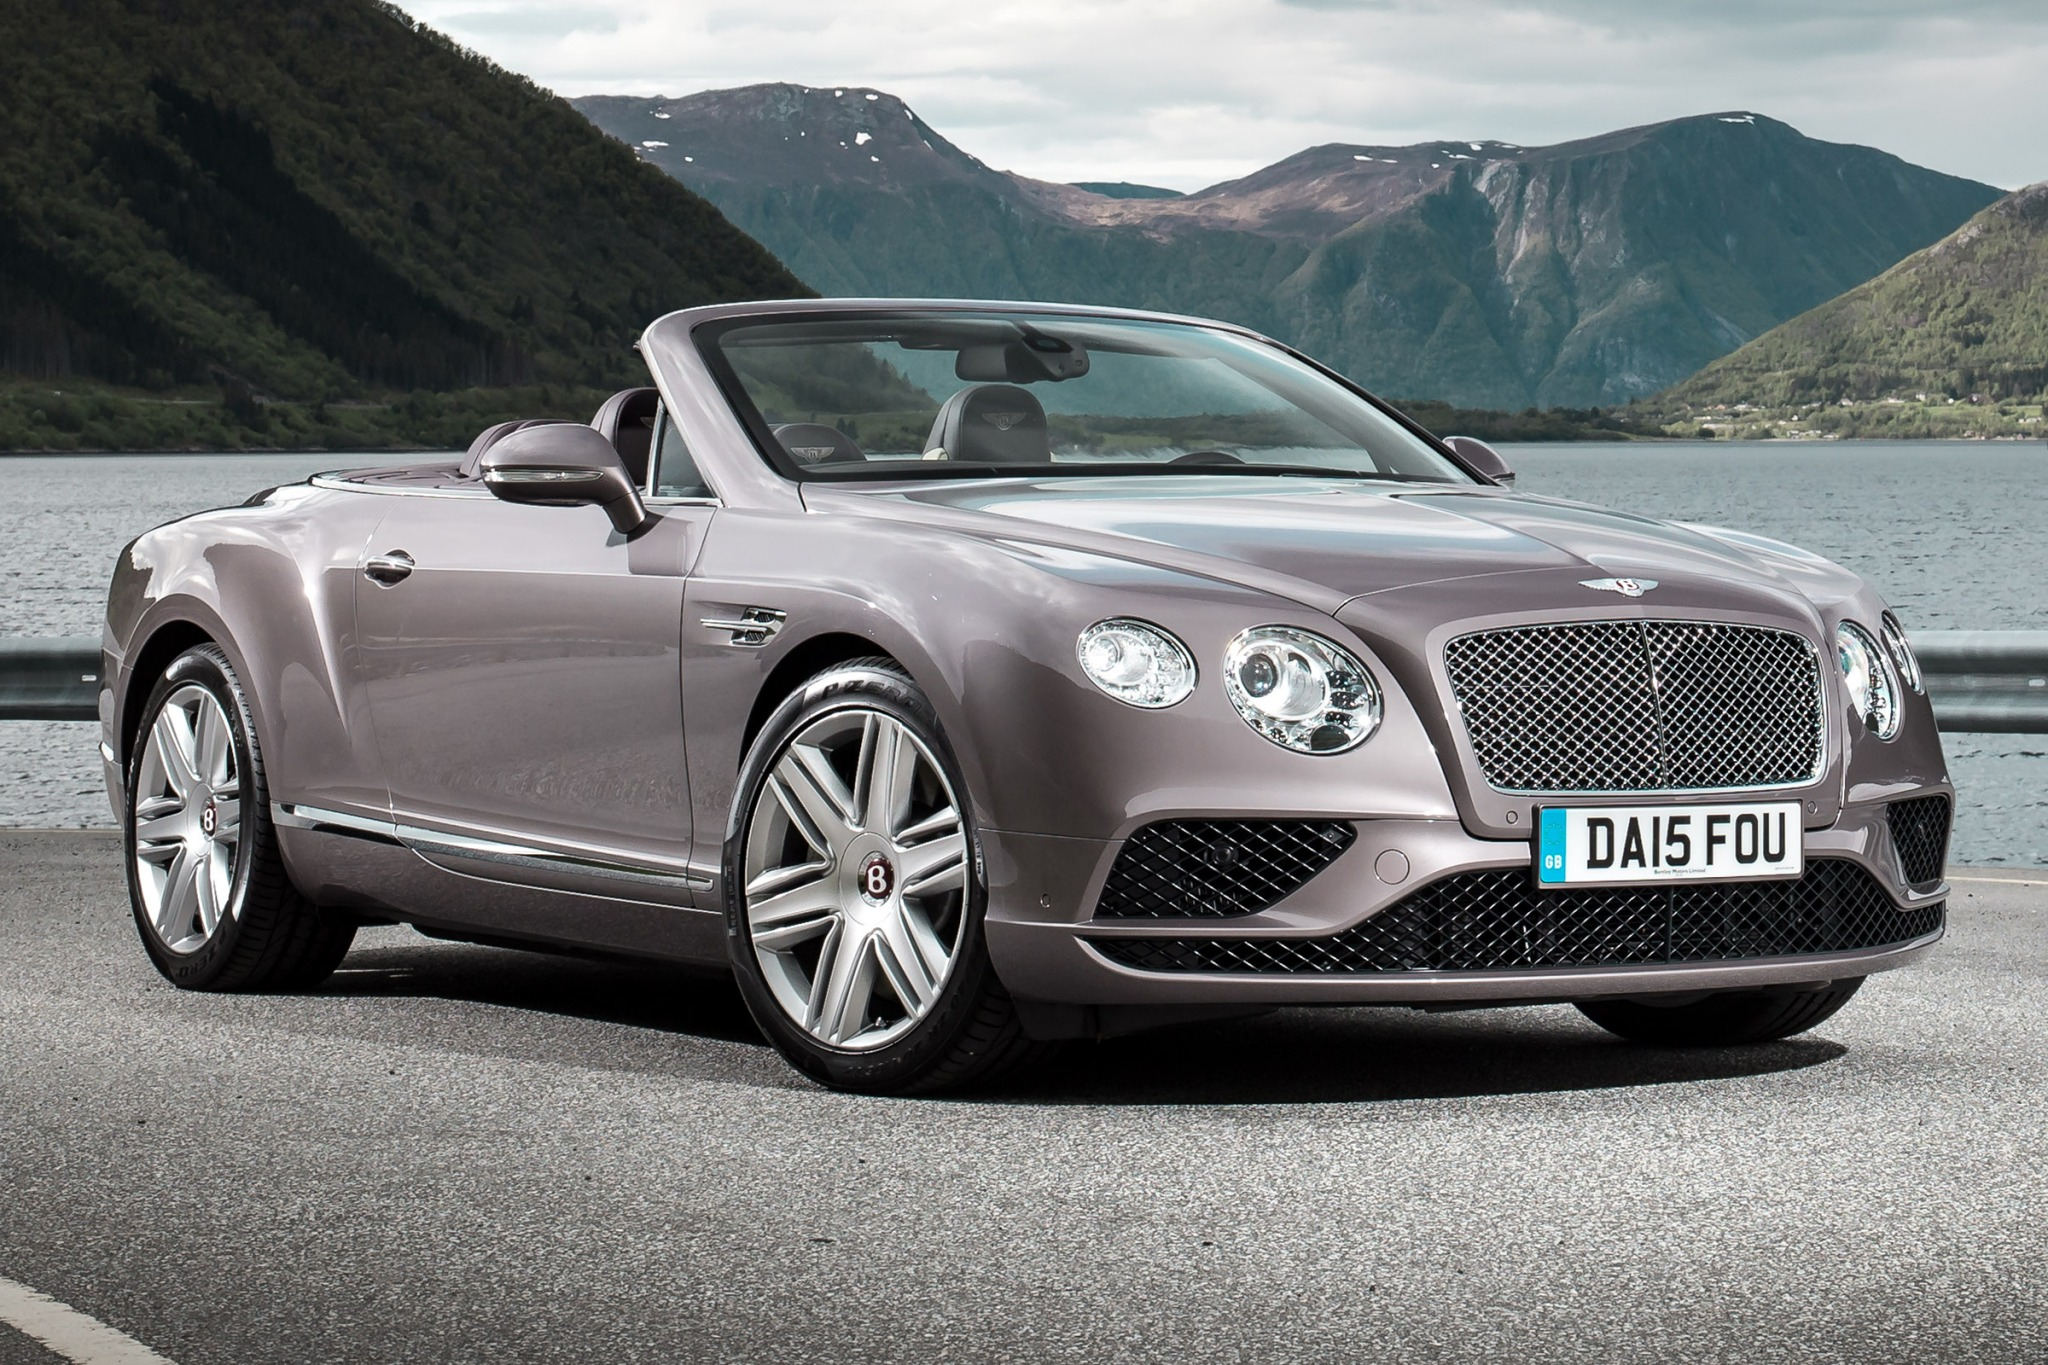 gt htm va for near convertible price l coupe new c bentley continental sale stock vienna